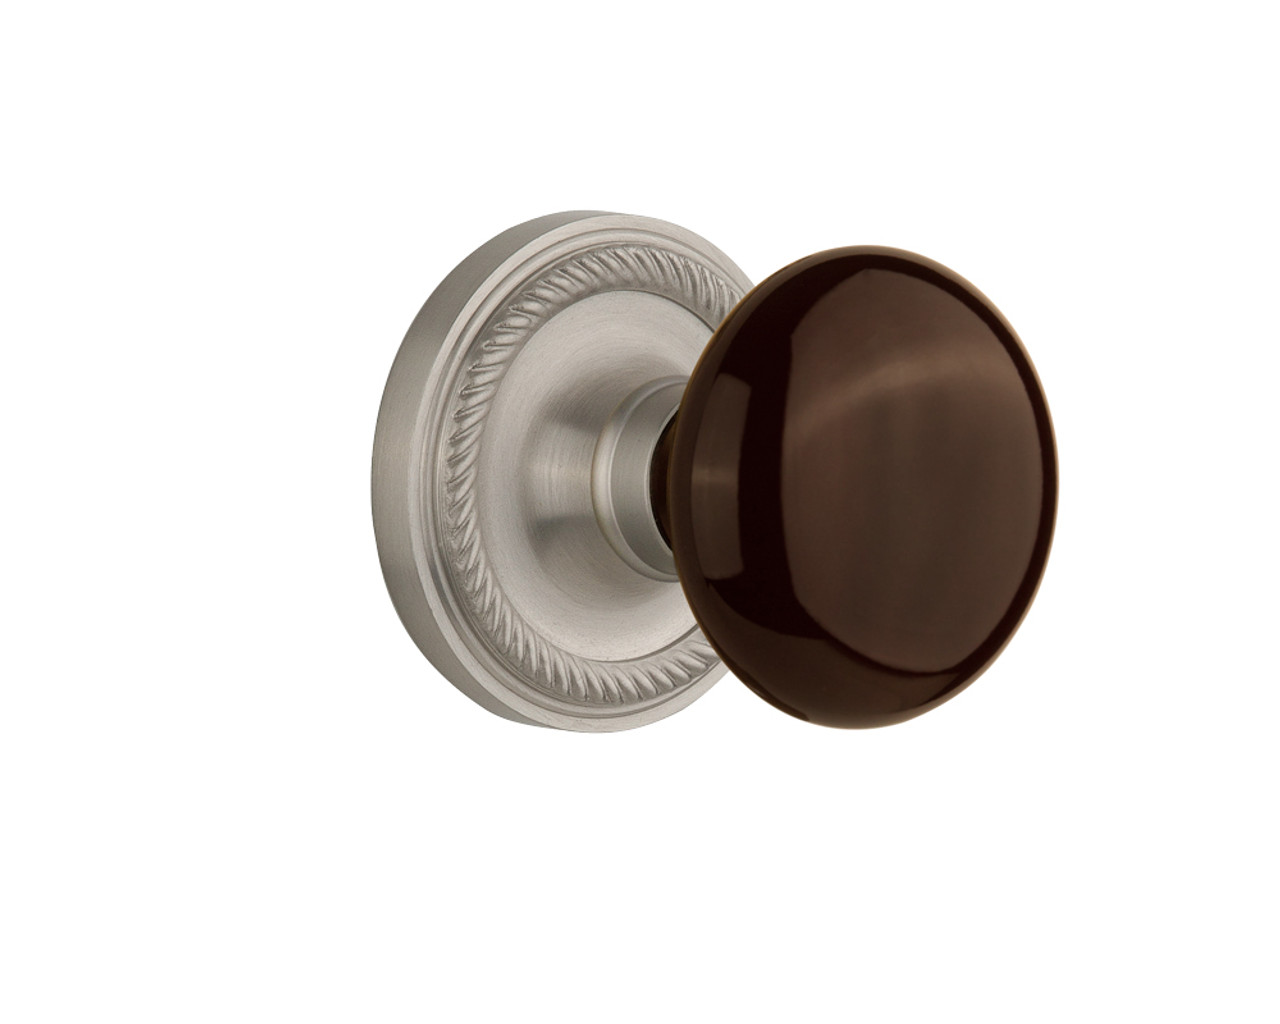 Nostalgic Warehouse Rope Rosette Double Dummy Brown Porcelain Door Knob in Satin Nickel (NW-710665)